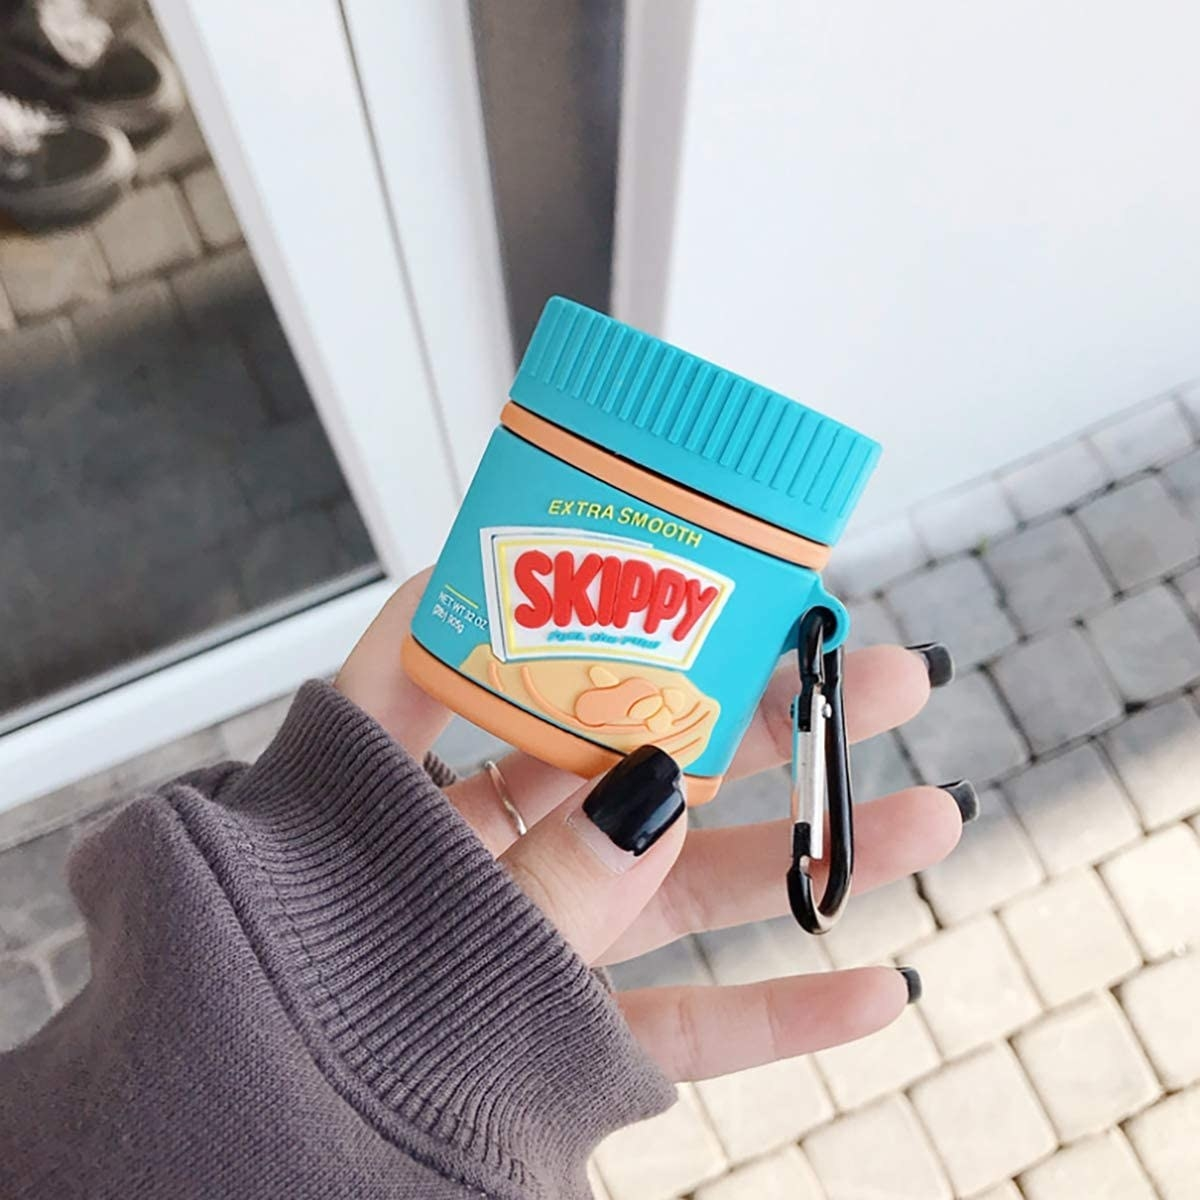 silicone airpods case that looks like a skippy peanut butter jar